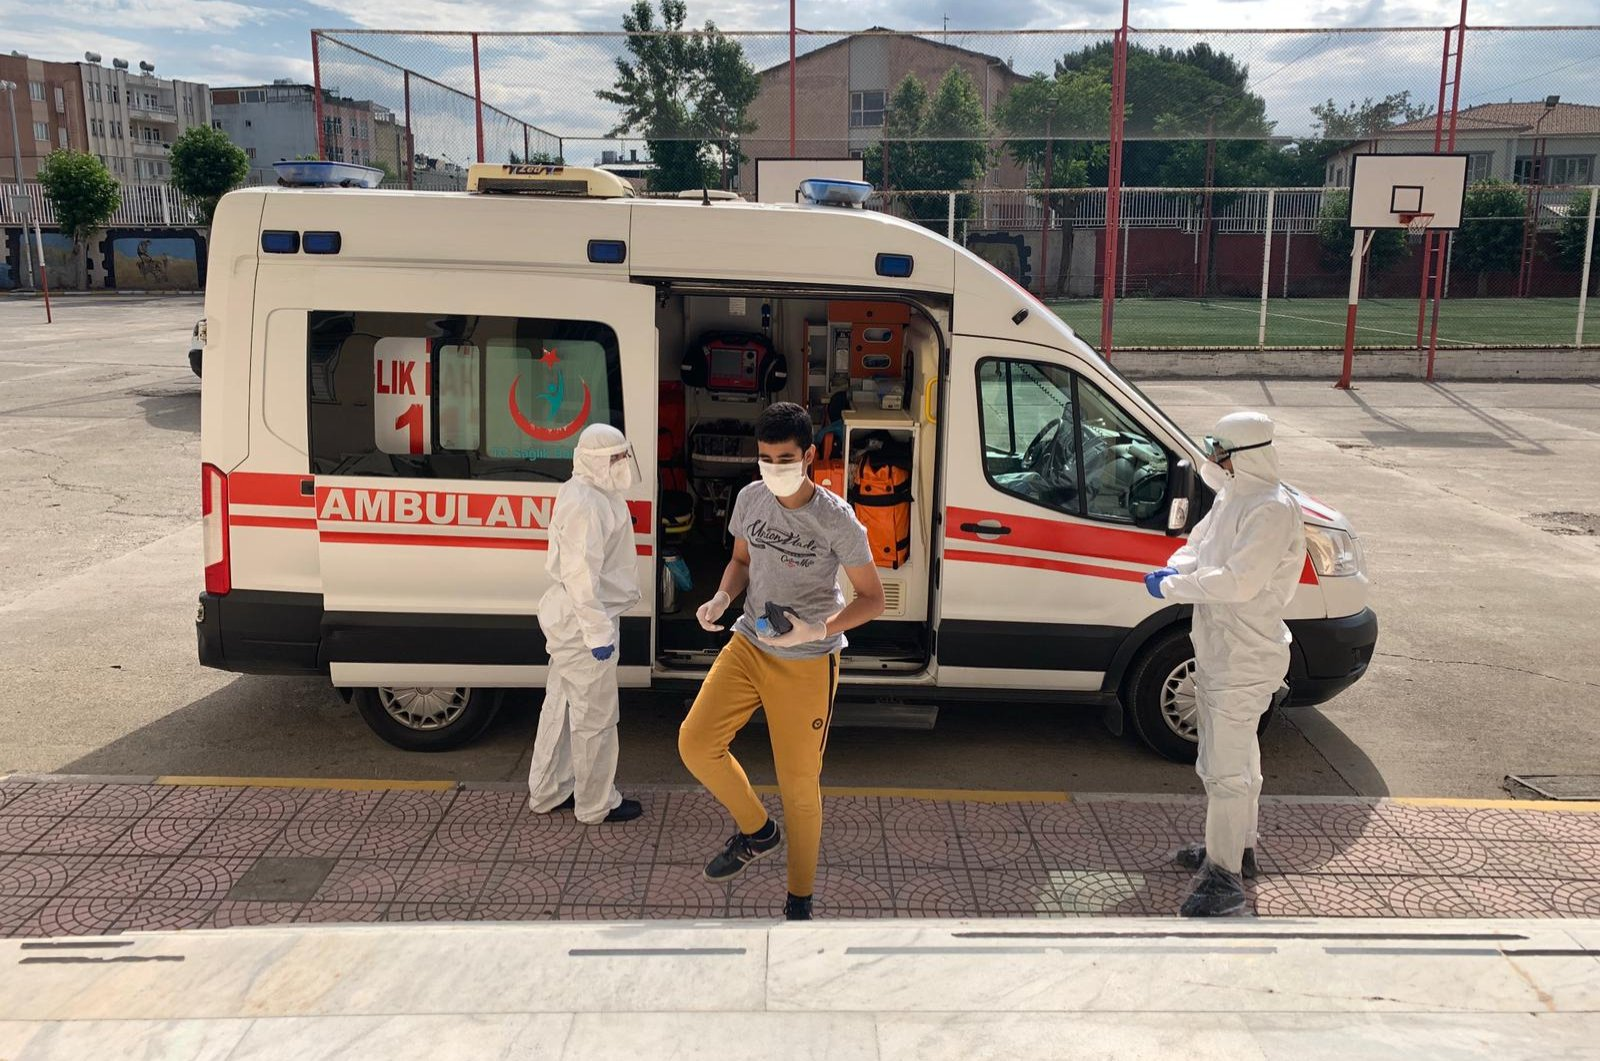 A student is brought by ambulance to a school for last week's high school admission exam in eastern Turkey's Adıyaman province, June 20, 2020. (AA Photo)